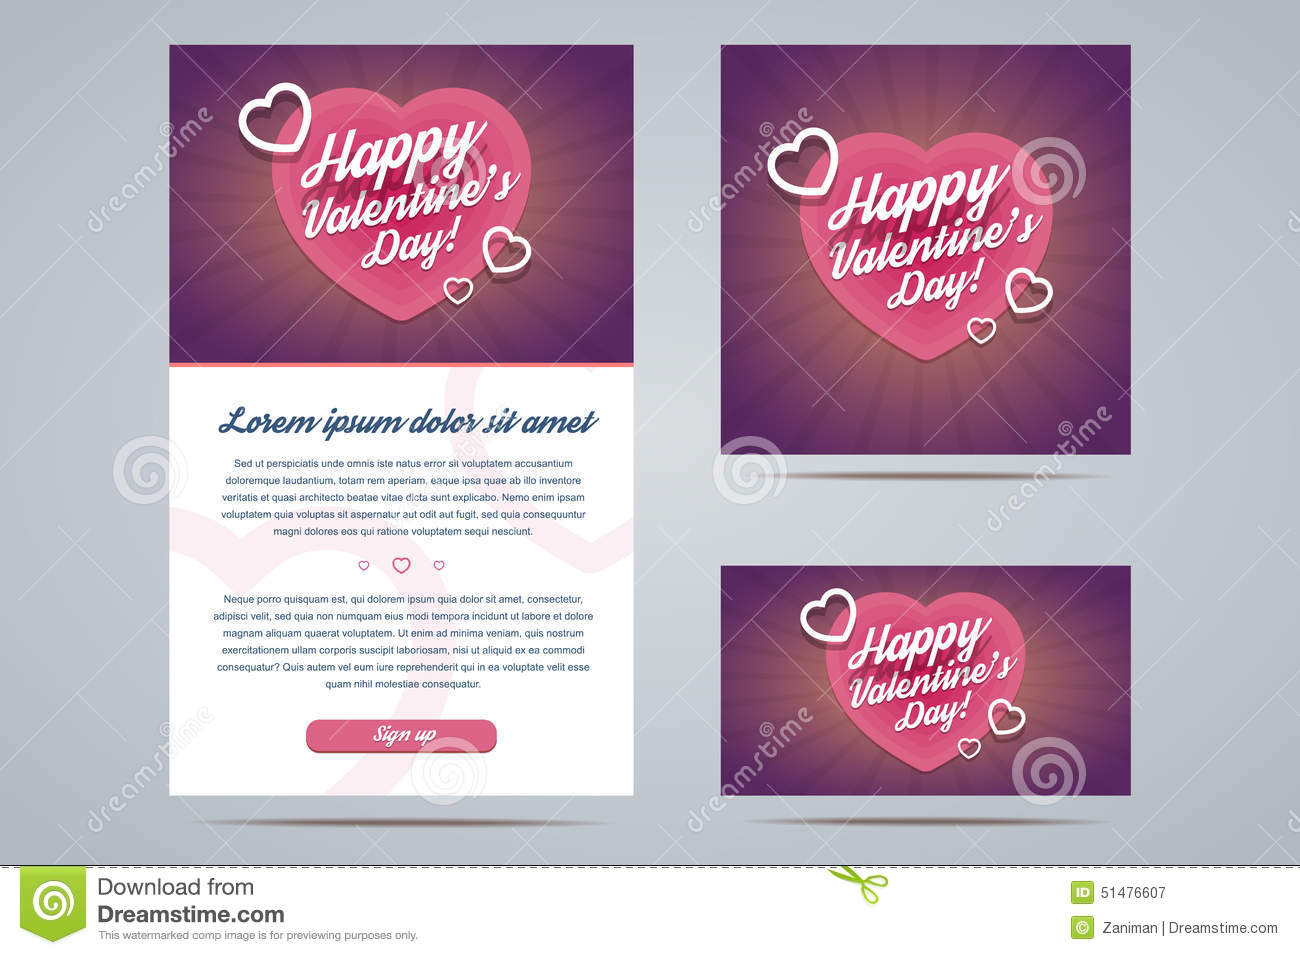 Happy valentines day email template stock vector illustration of happy valentines day email template m4hsunfo